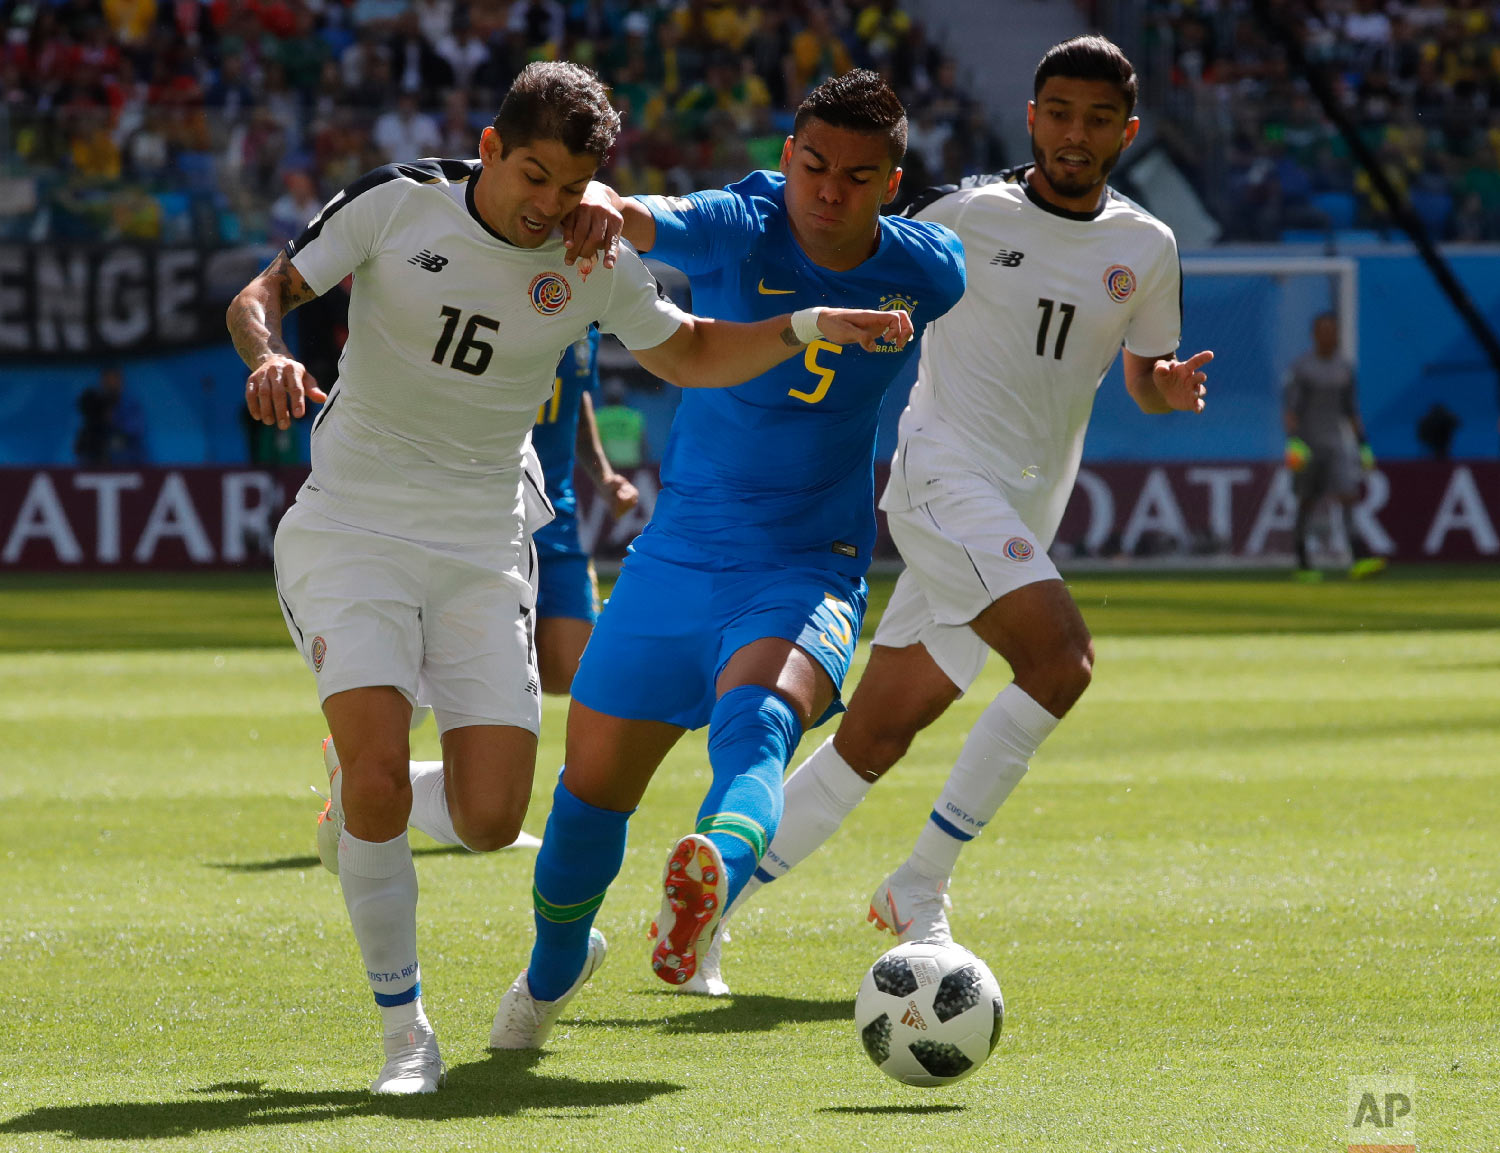 Costa Rica's Cristian Gamboa, left, and Brazil's Casemiro challenge for the ball during the group E match between Brazil and Costa Rica at the 2018 soccer World Cup in the St. Petersburg Stadium in St. Petersburg, Russia, Friday, June 22, 2018. (AP Photo/Dmitri Lovetsky)